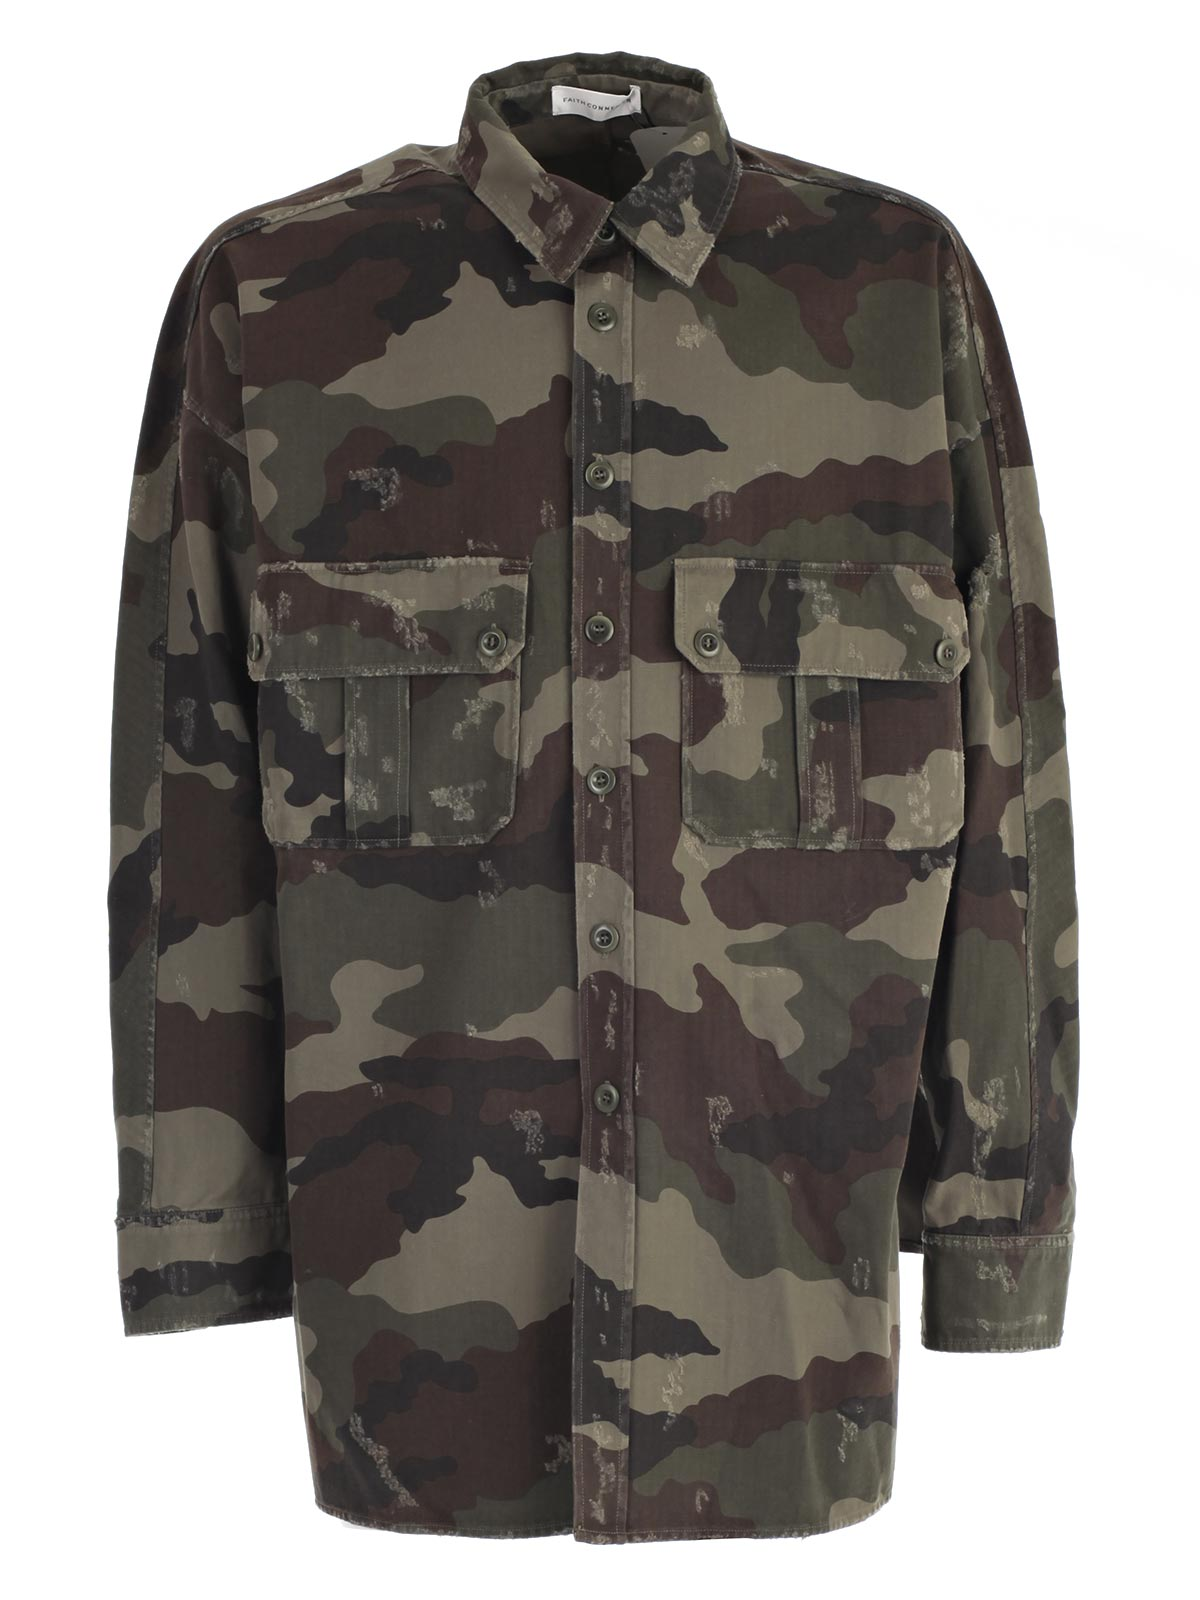 Picture of FAITH CONNEXION CAMO SHIRT